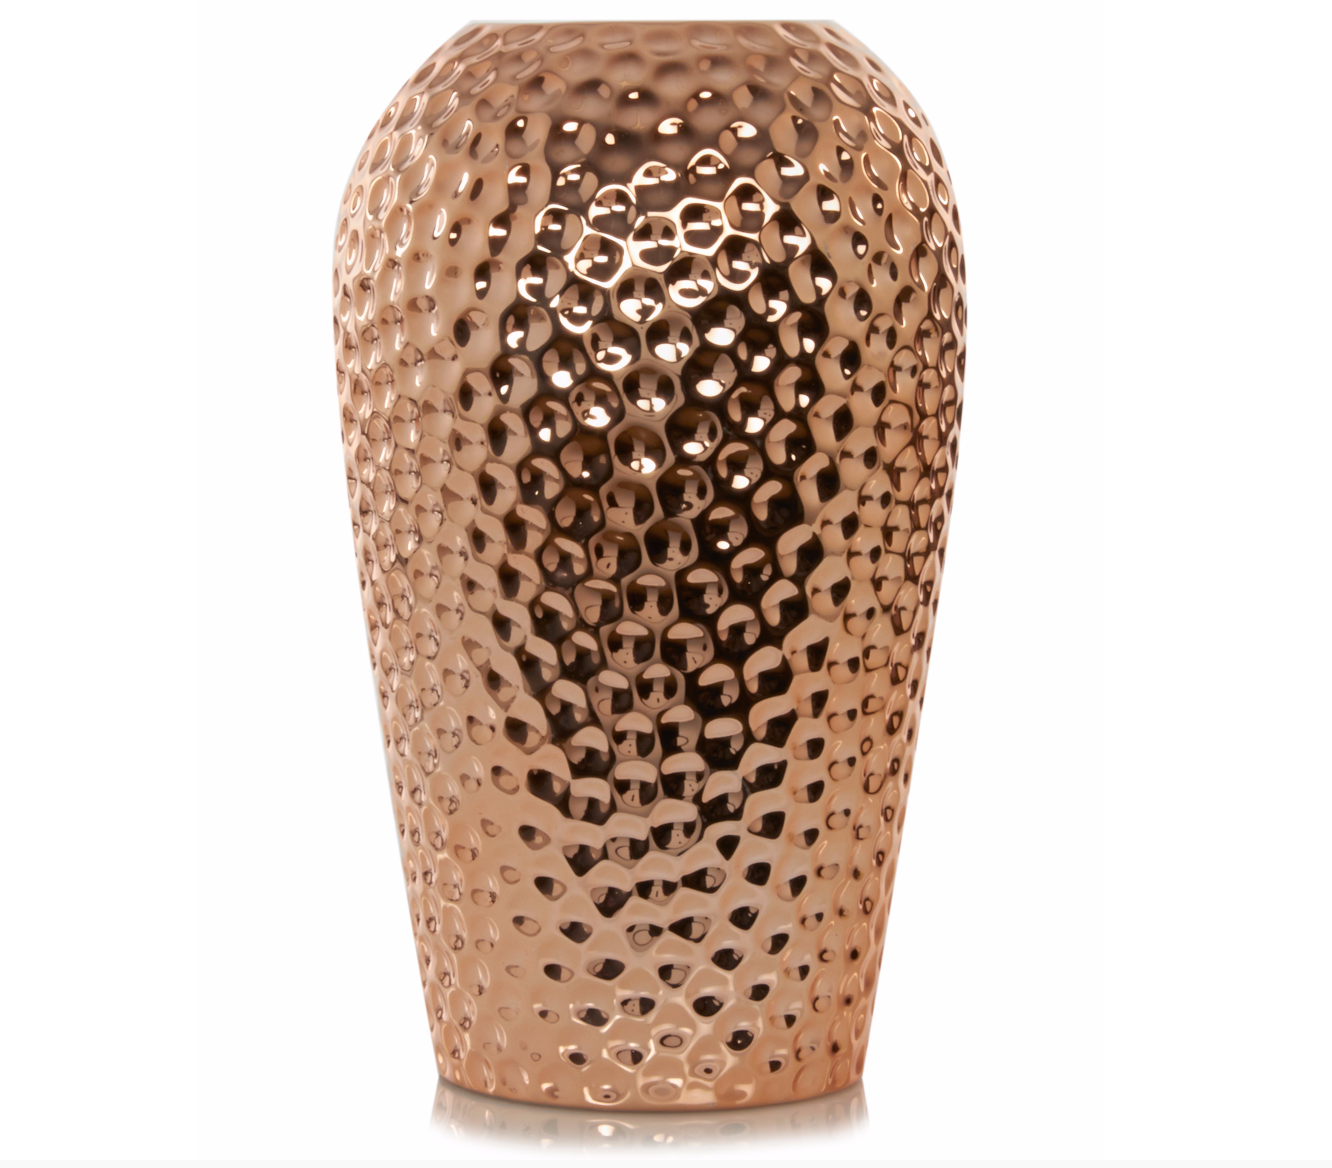 Hammered Copper Vase £15